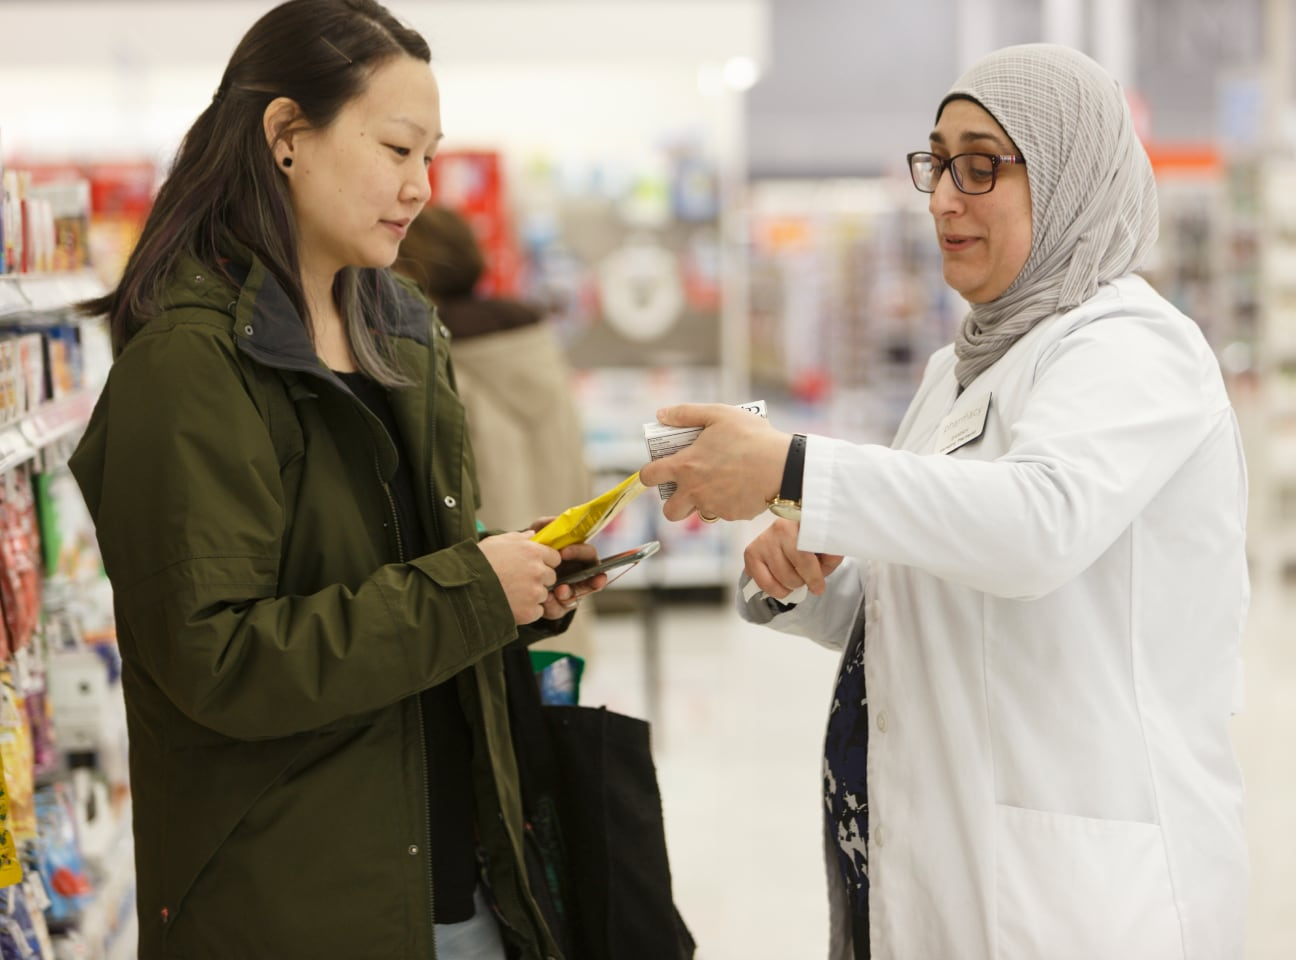 A pharmacist assisting a customer in Shoppers Drug Mart.